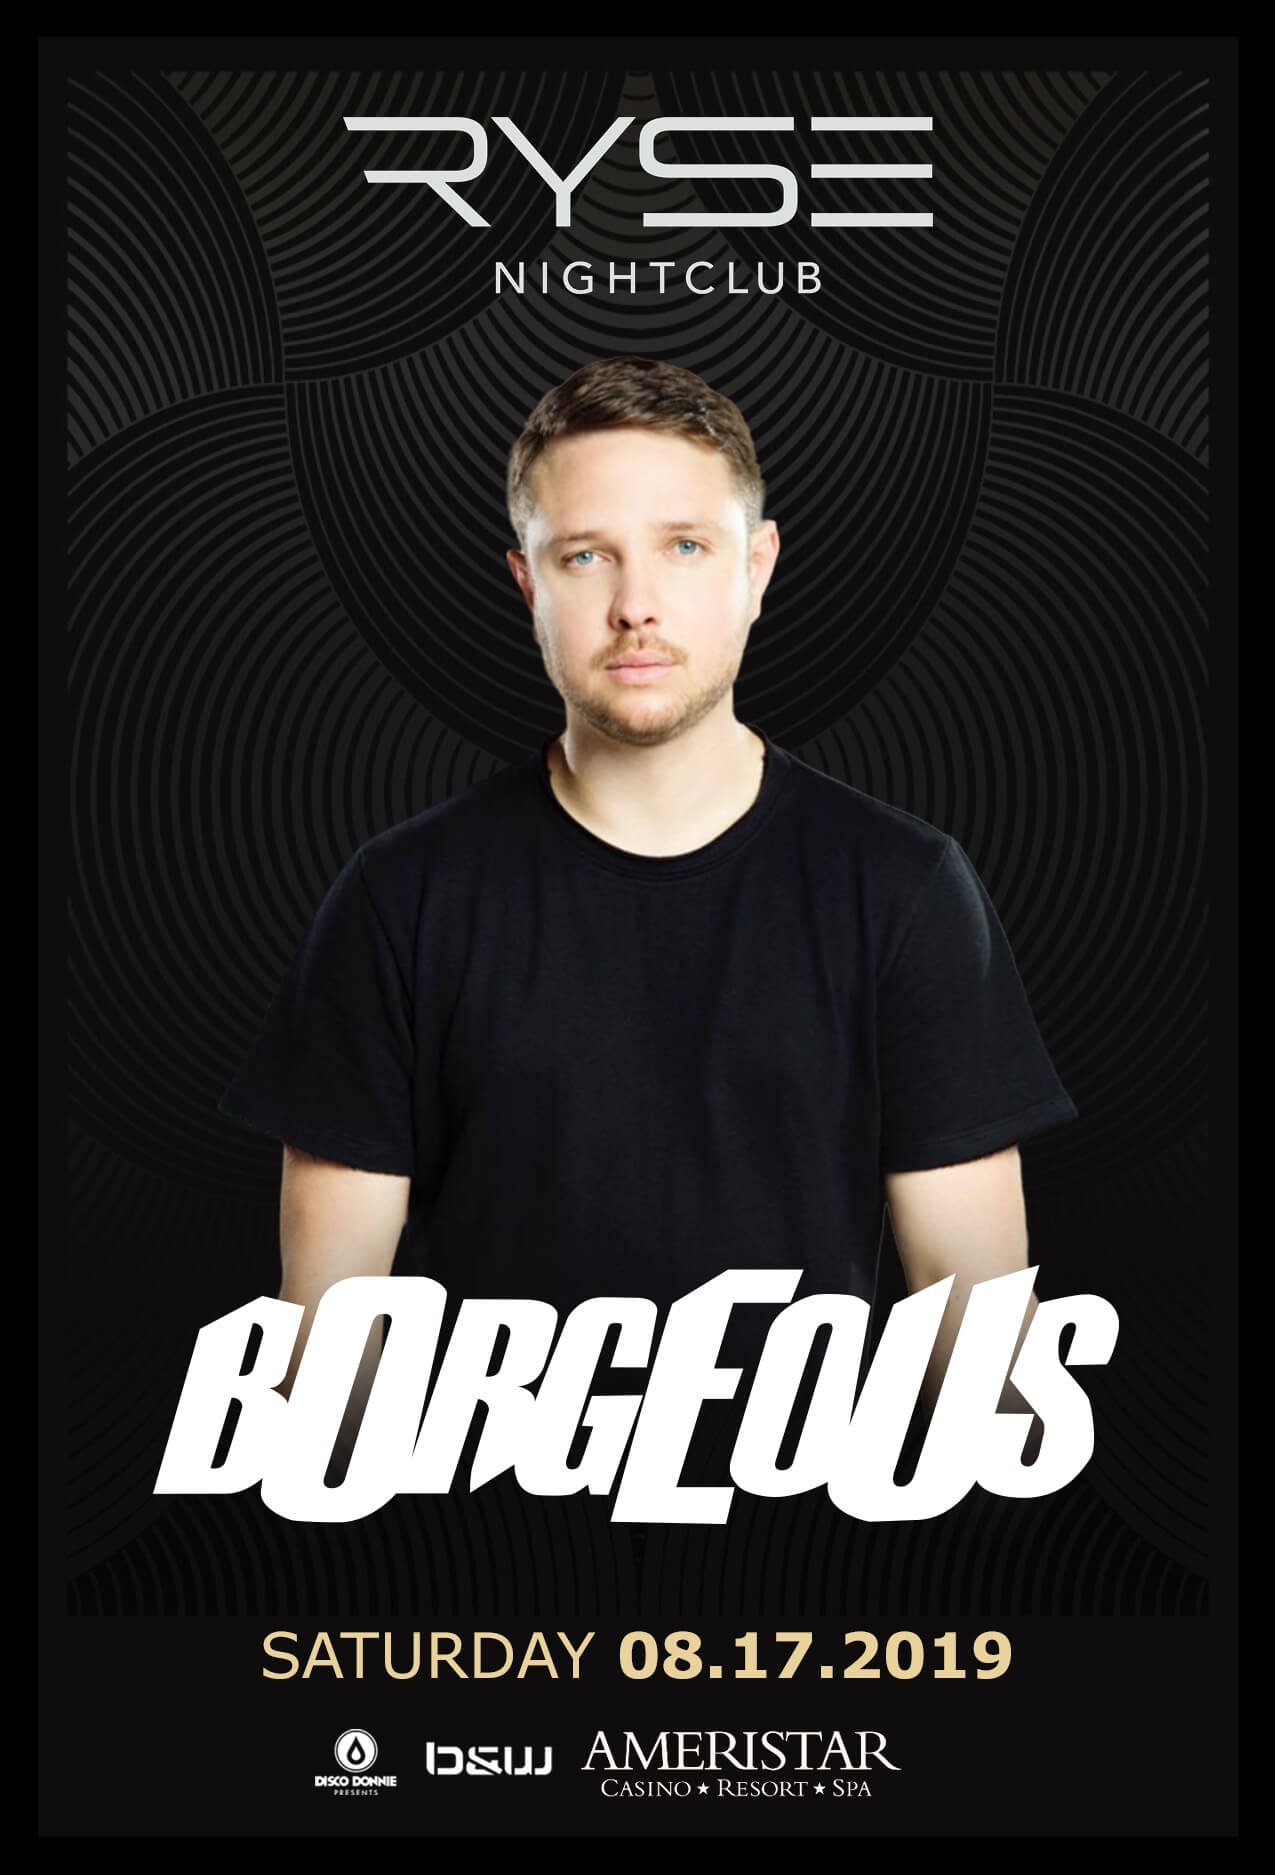 Borgeous in St Charles